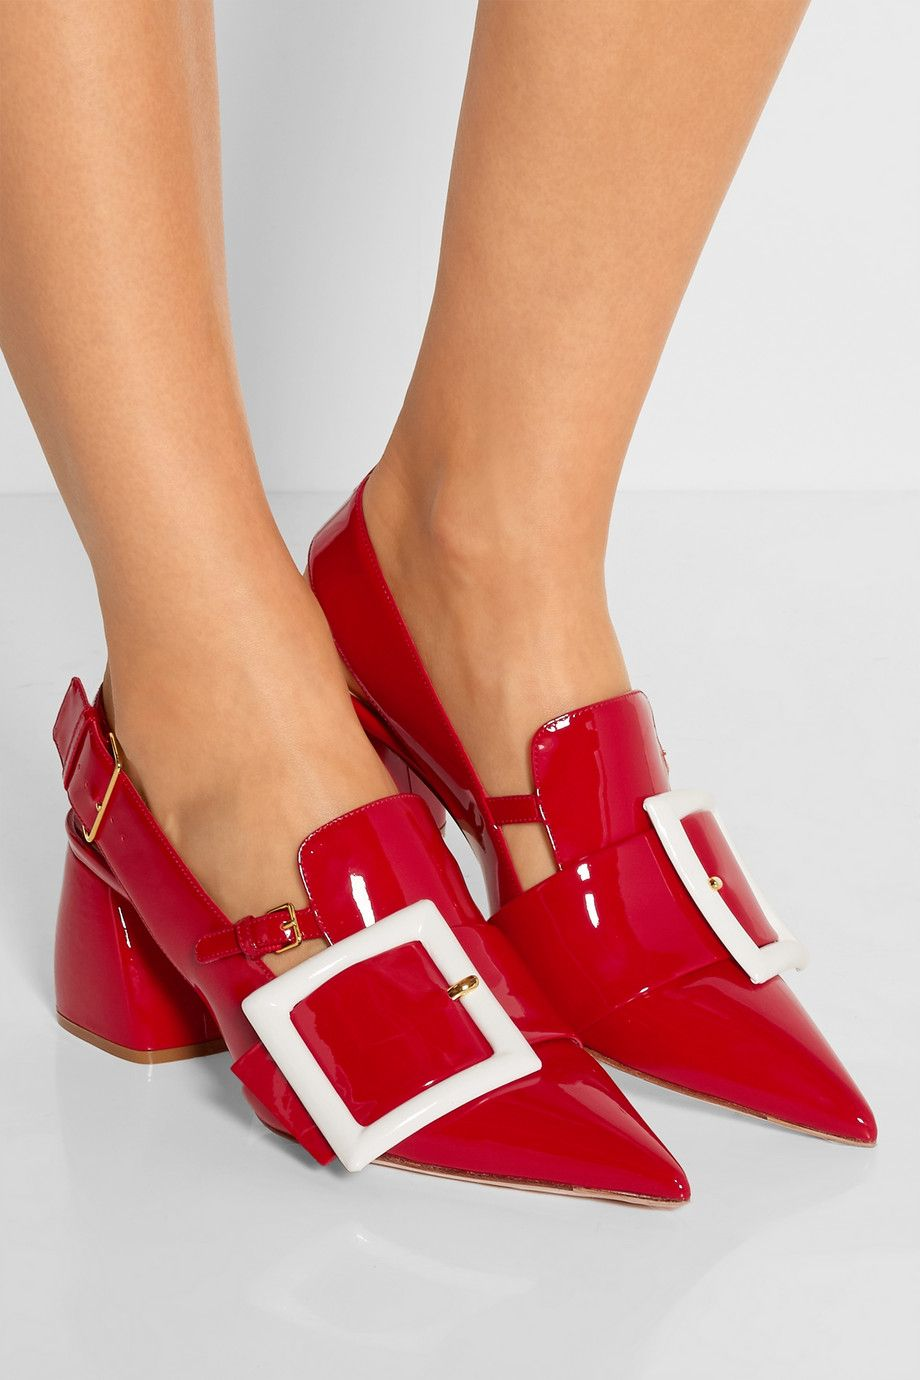 Red Buckled Patent Leather Slingback Pumps Miu Miu In 2020 Dress Shoes Womens Celebrity Shoes Trendy High Heels